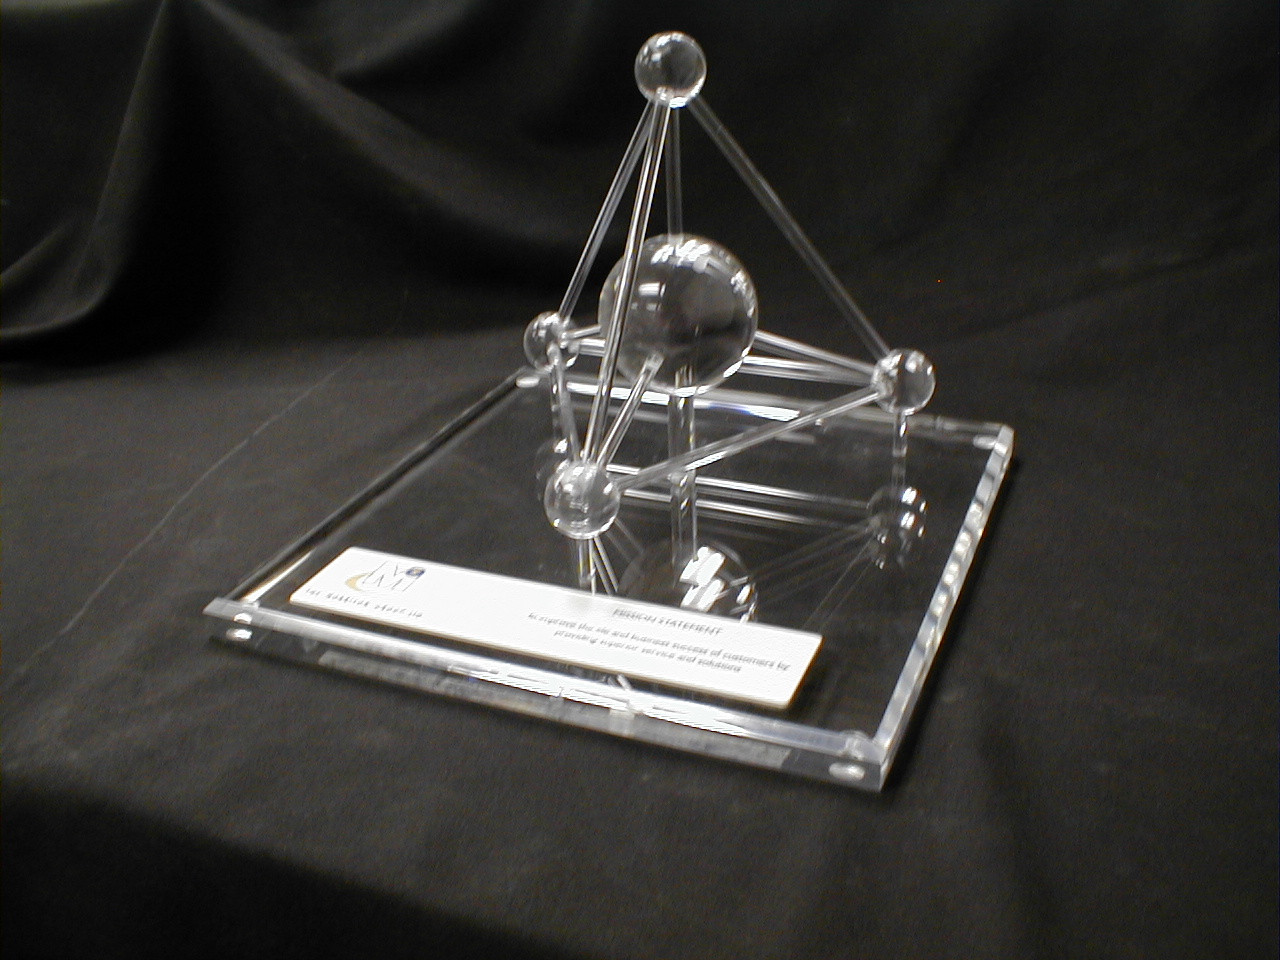 Display Model - Clear Acrylic Fabrication